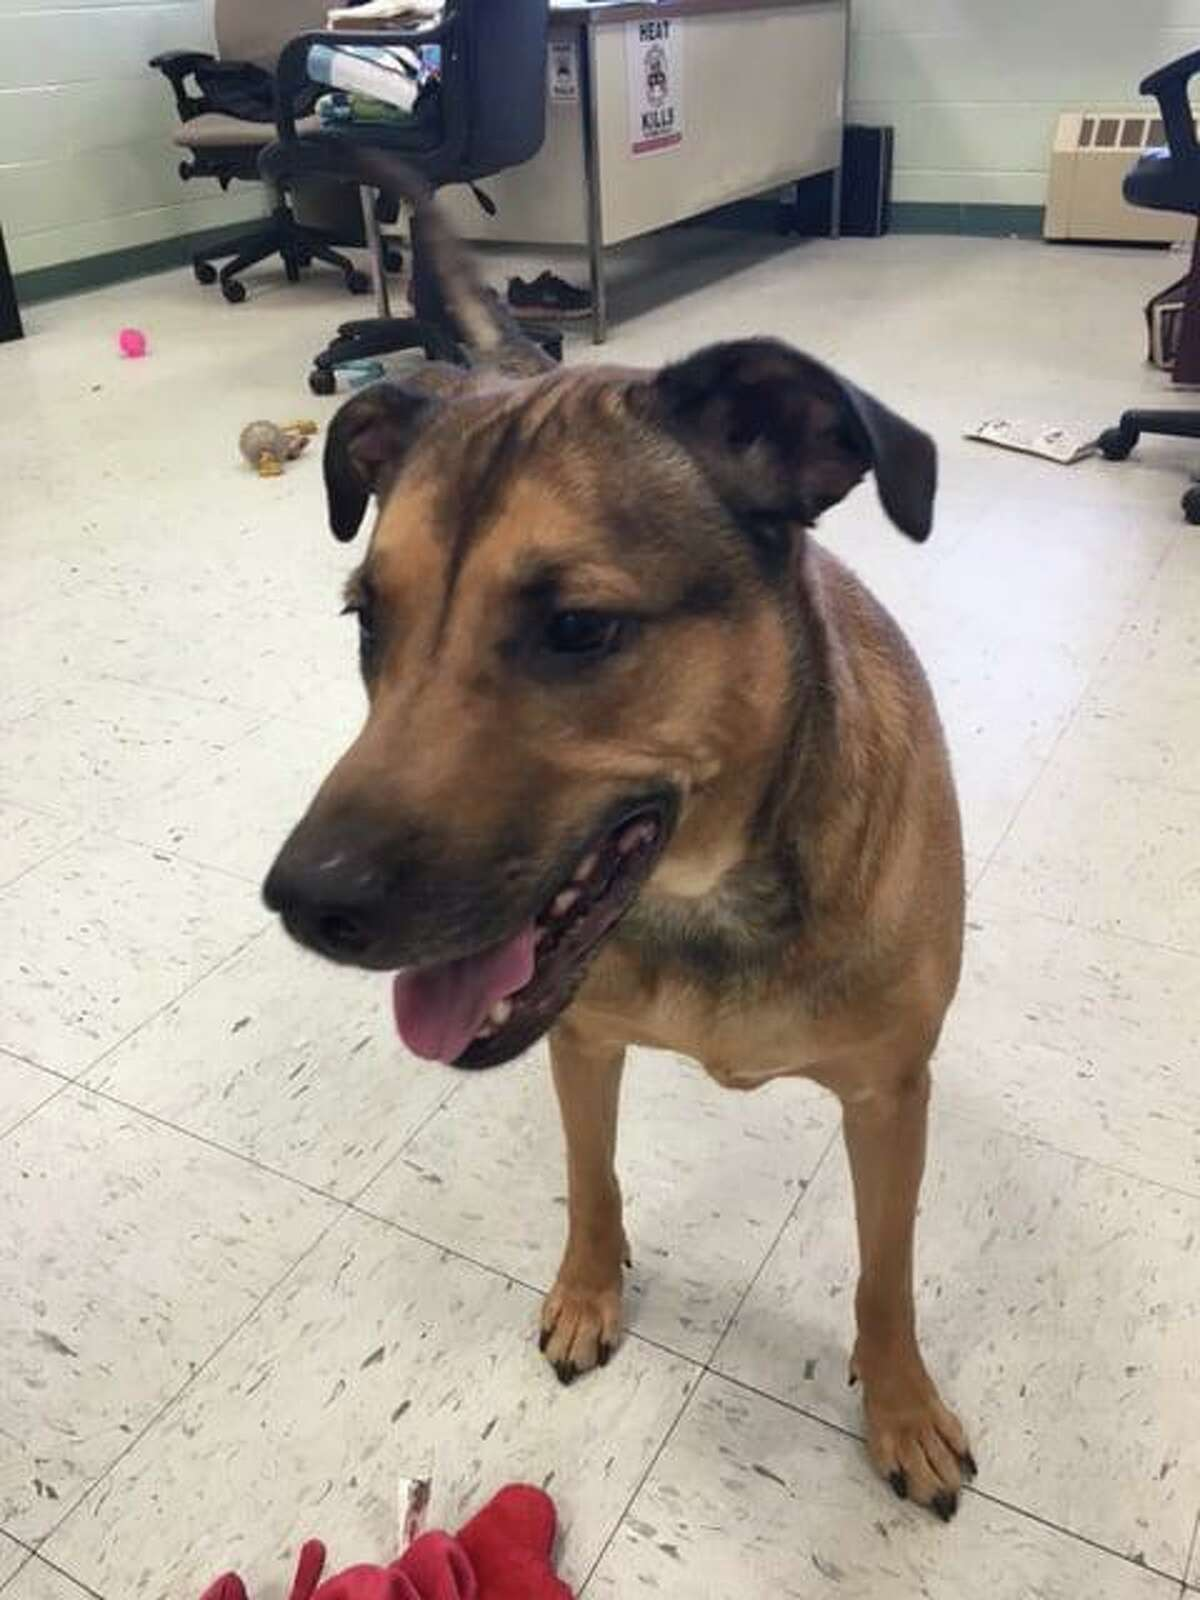 On Nov. 9, 2019, Fairfield Animal Control posted to pictures to its Facebook page seeking a home for Sunny, aka Moon Peace. It was the latest of several posts on the canine, whose owner died several months ago.